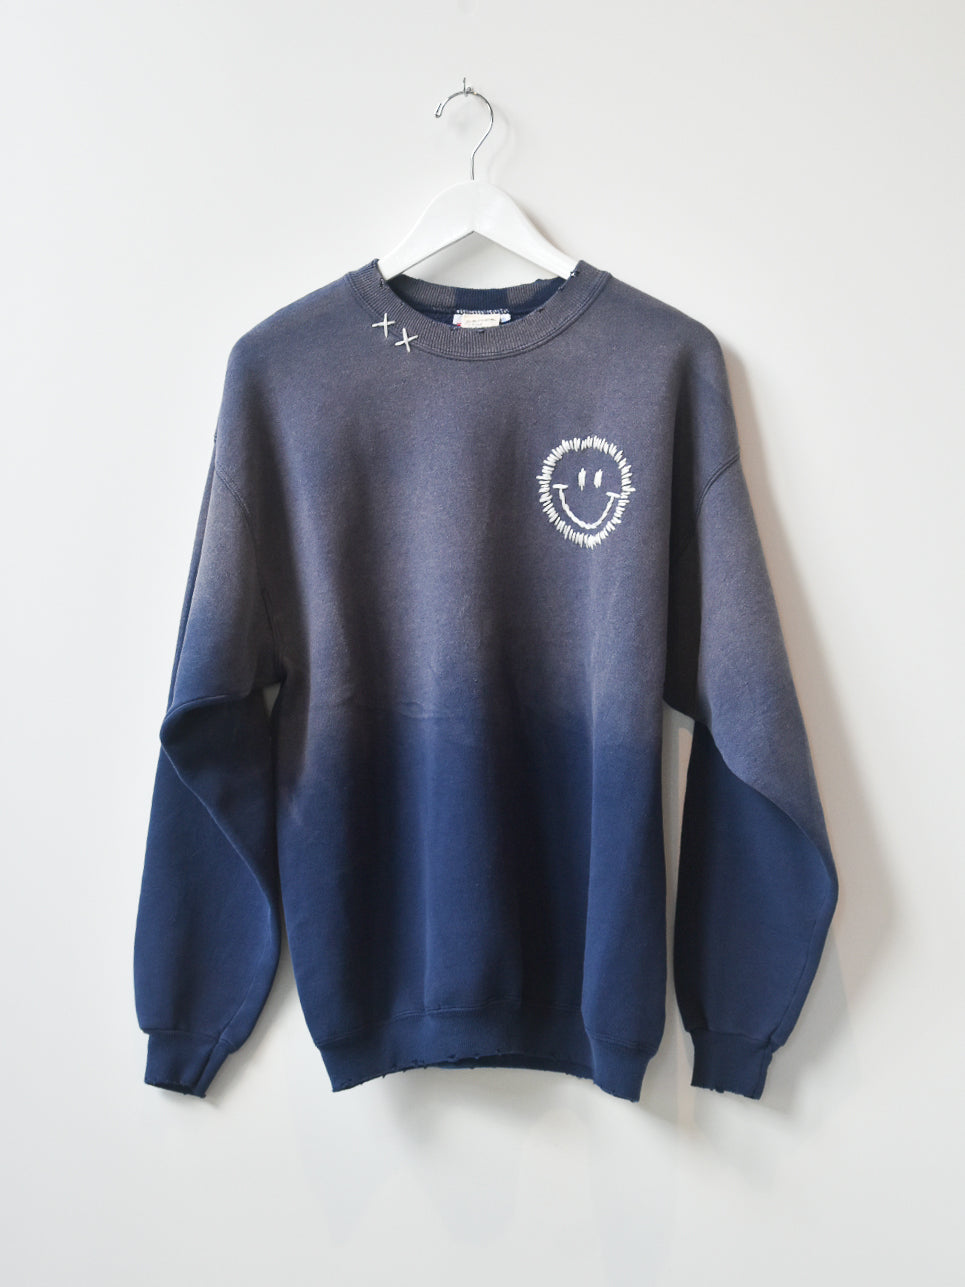 Happy Face Vintage Sweatshirt- Blue Wash